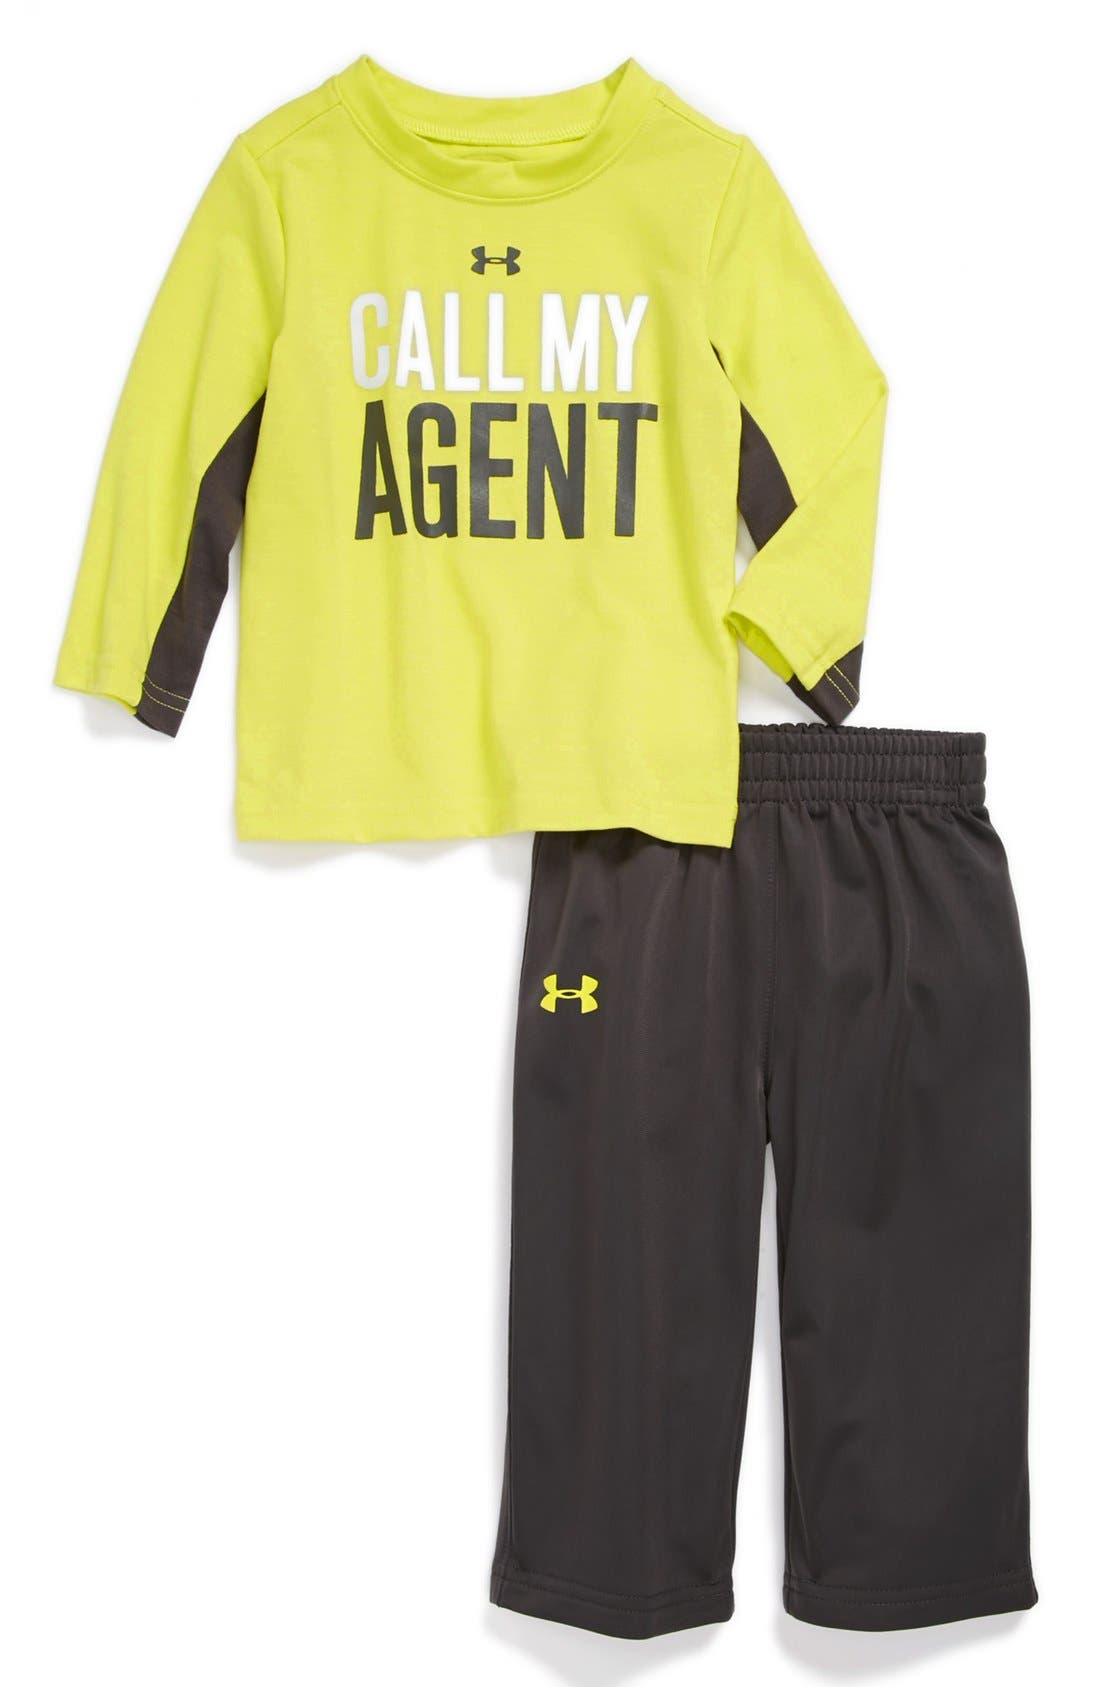 Alternate Image 1 Selected - Under Armour 'Call My Agent' T-Shirt & Pants (Baby Boys)